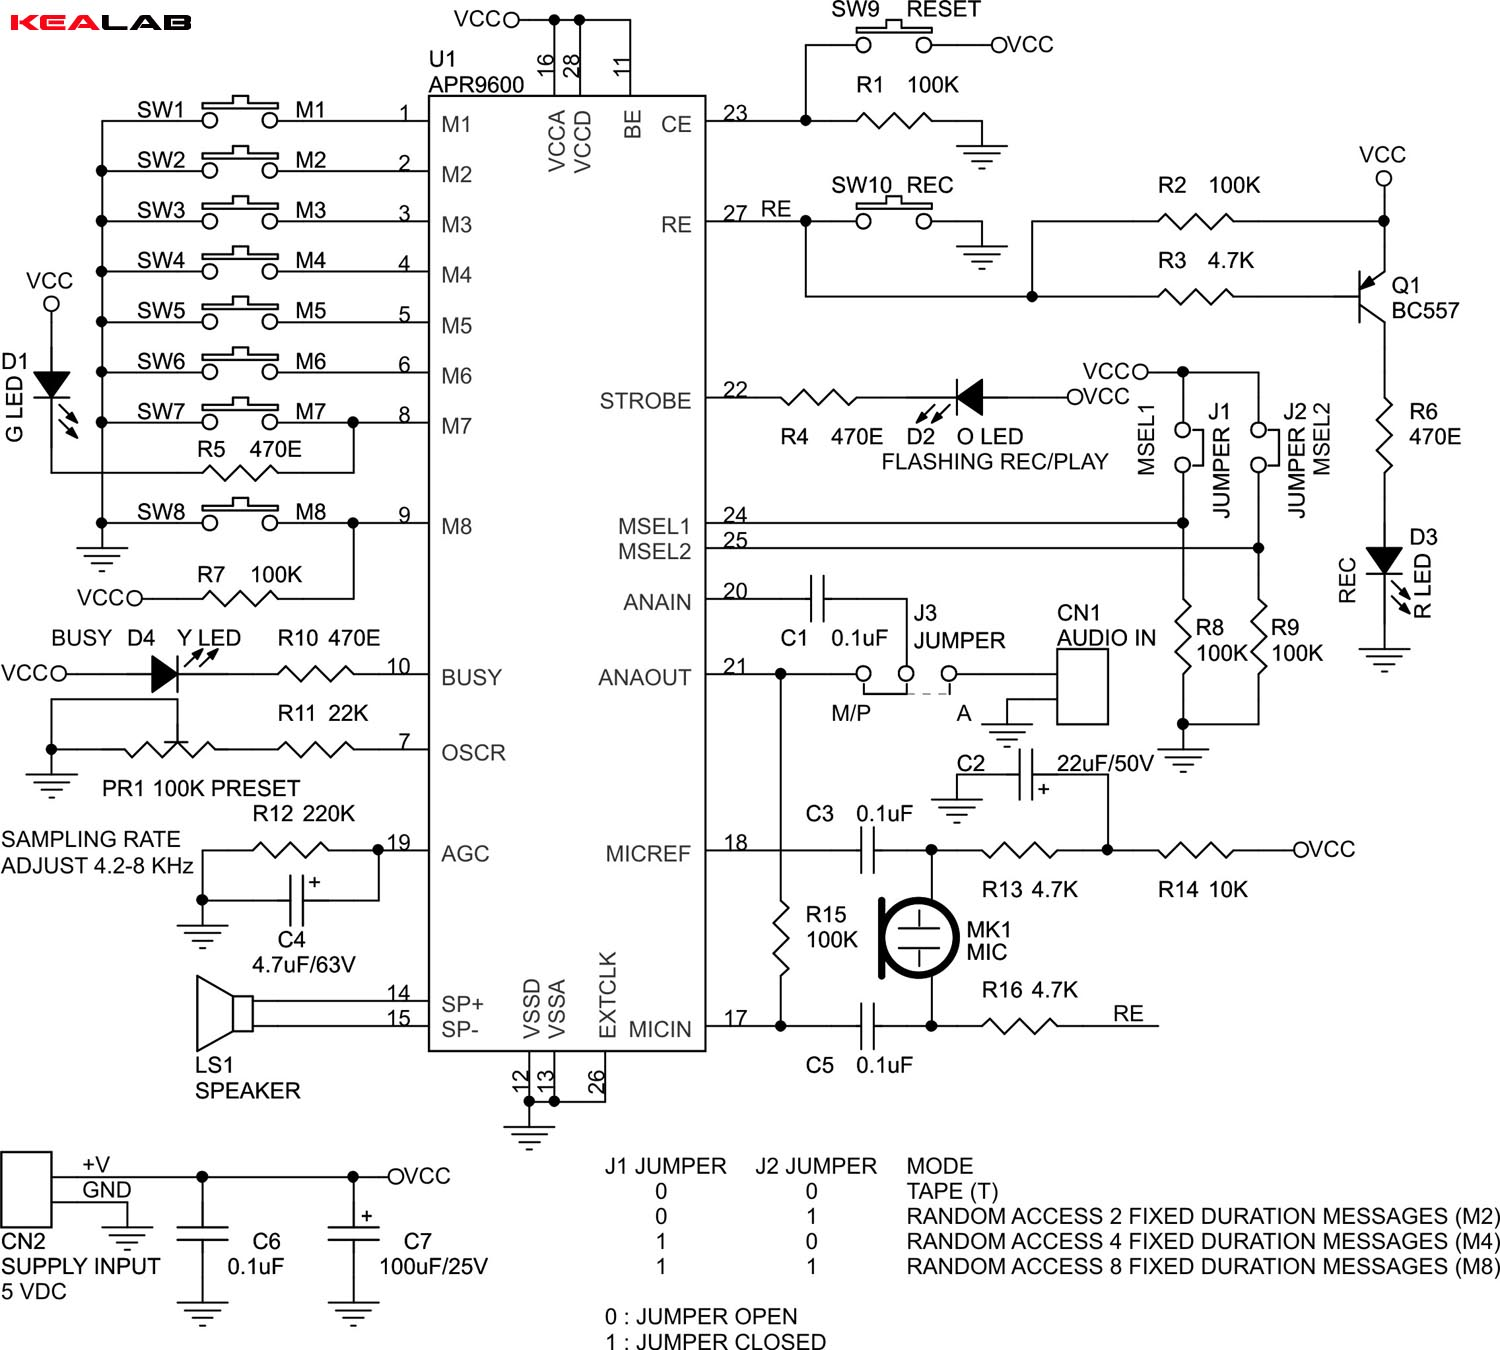 60 Seconds Voice Record Playback Module Electronics Lab Diy Projectscircuit Schematics Diagrams And Projects Schematic